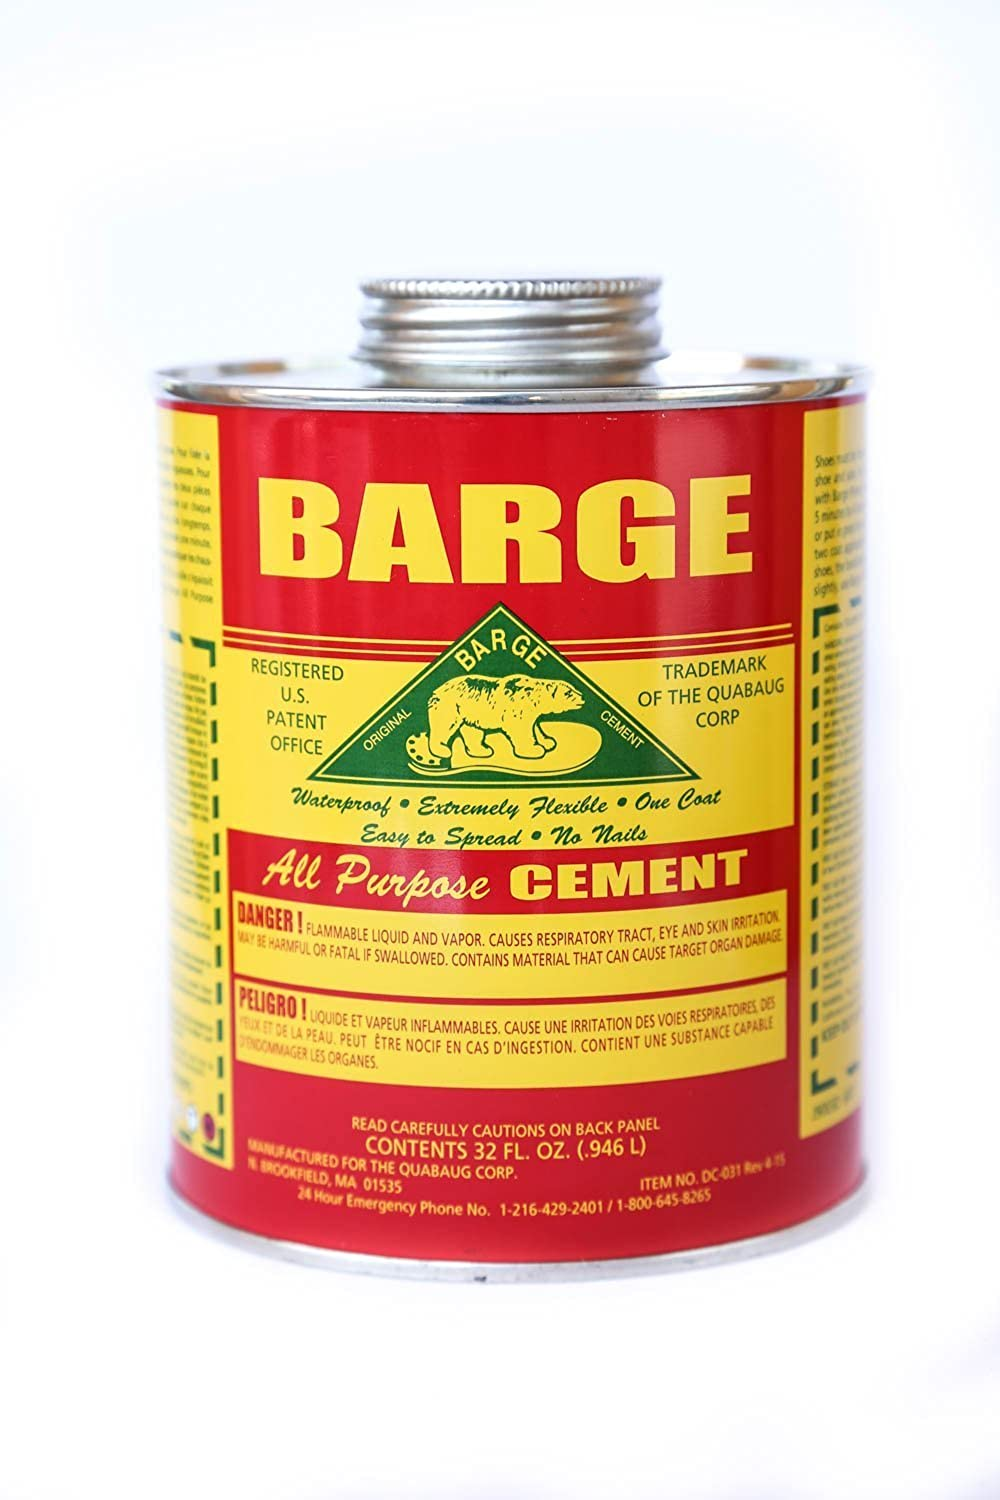 Cheap Barge All-purpose Cement Rubber Leather Shoe Waterproof Glue 1 Qt (O.946 L) for sale